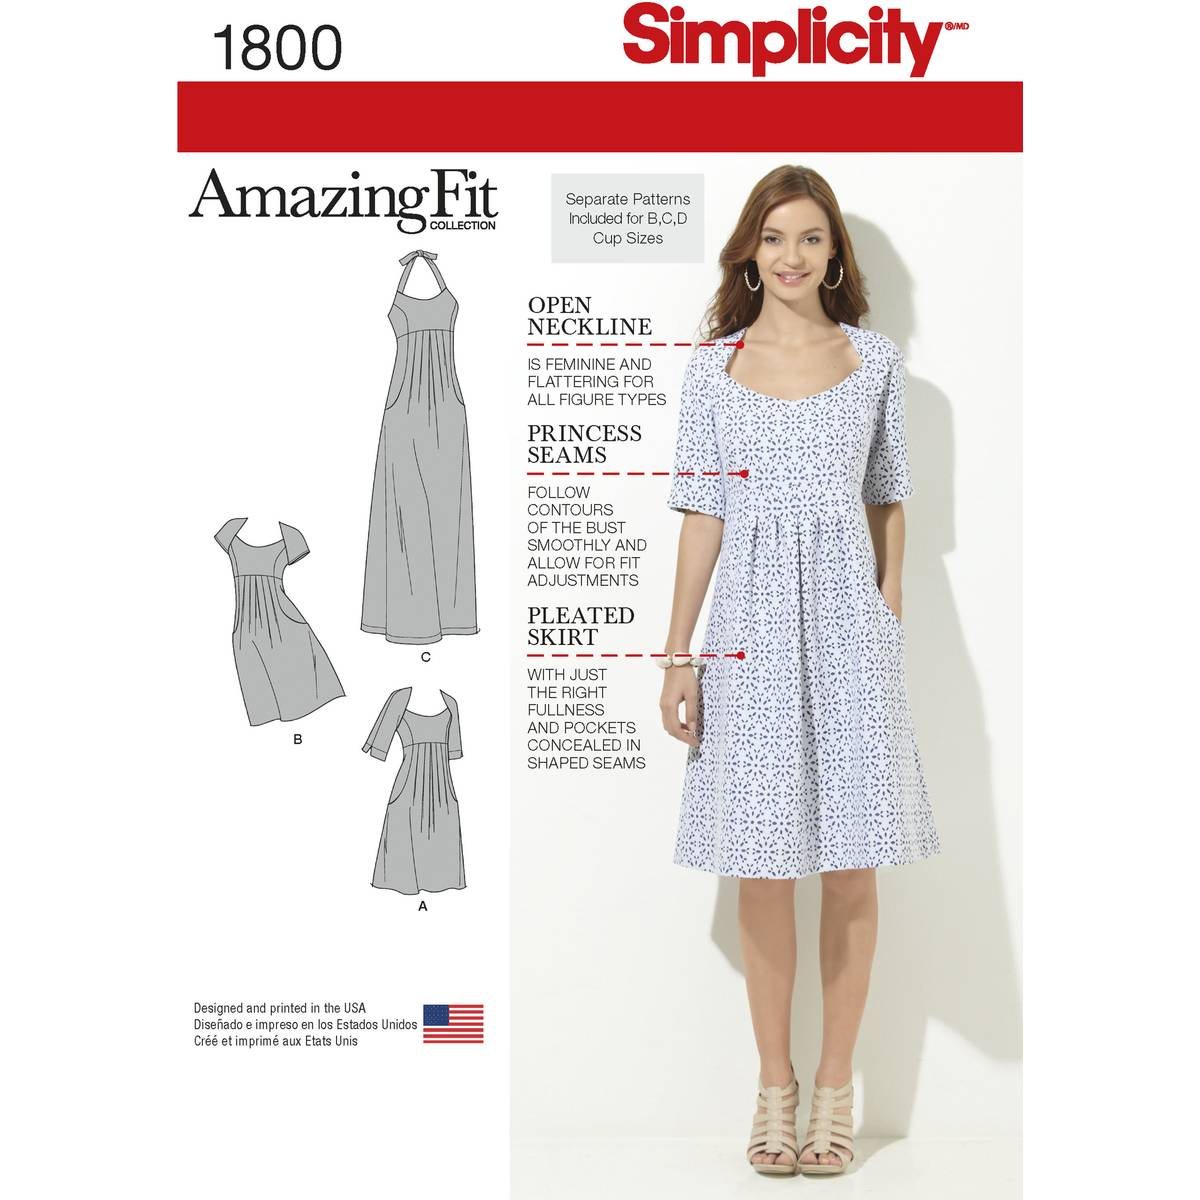 Dress Sewing Patterns Simplicity Womens Fit Dress Sewing Pattern 1800 Hobcraft